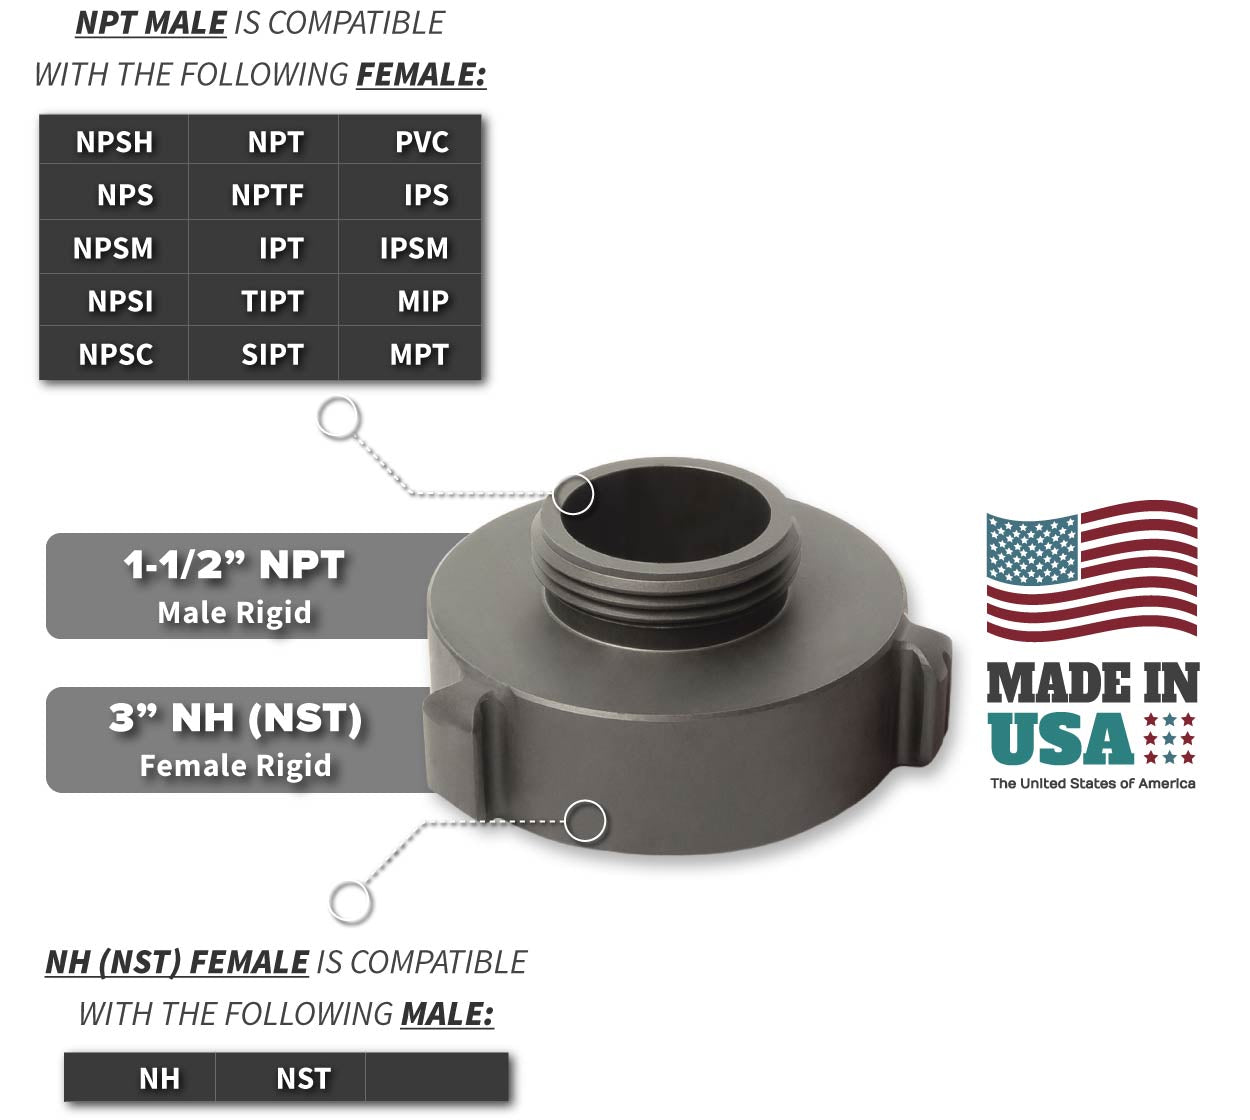 3 Inch NH-NST Female x 1.5 Inch NPT Male Compatibility Thread Chart